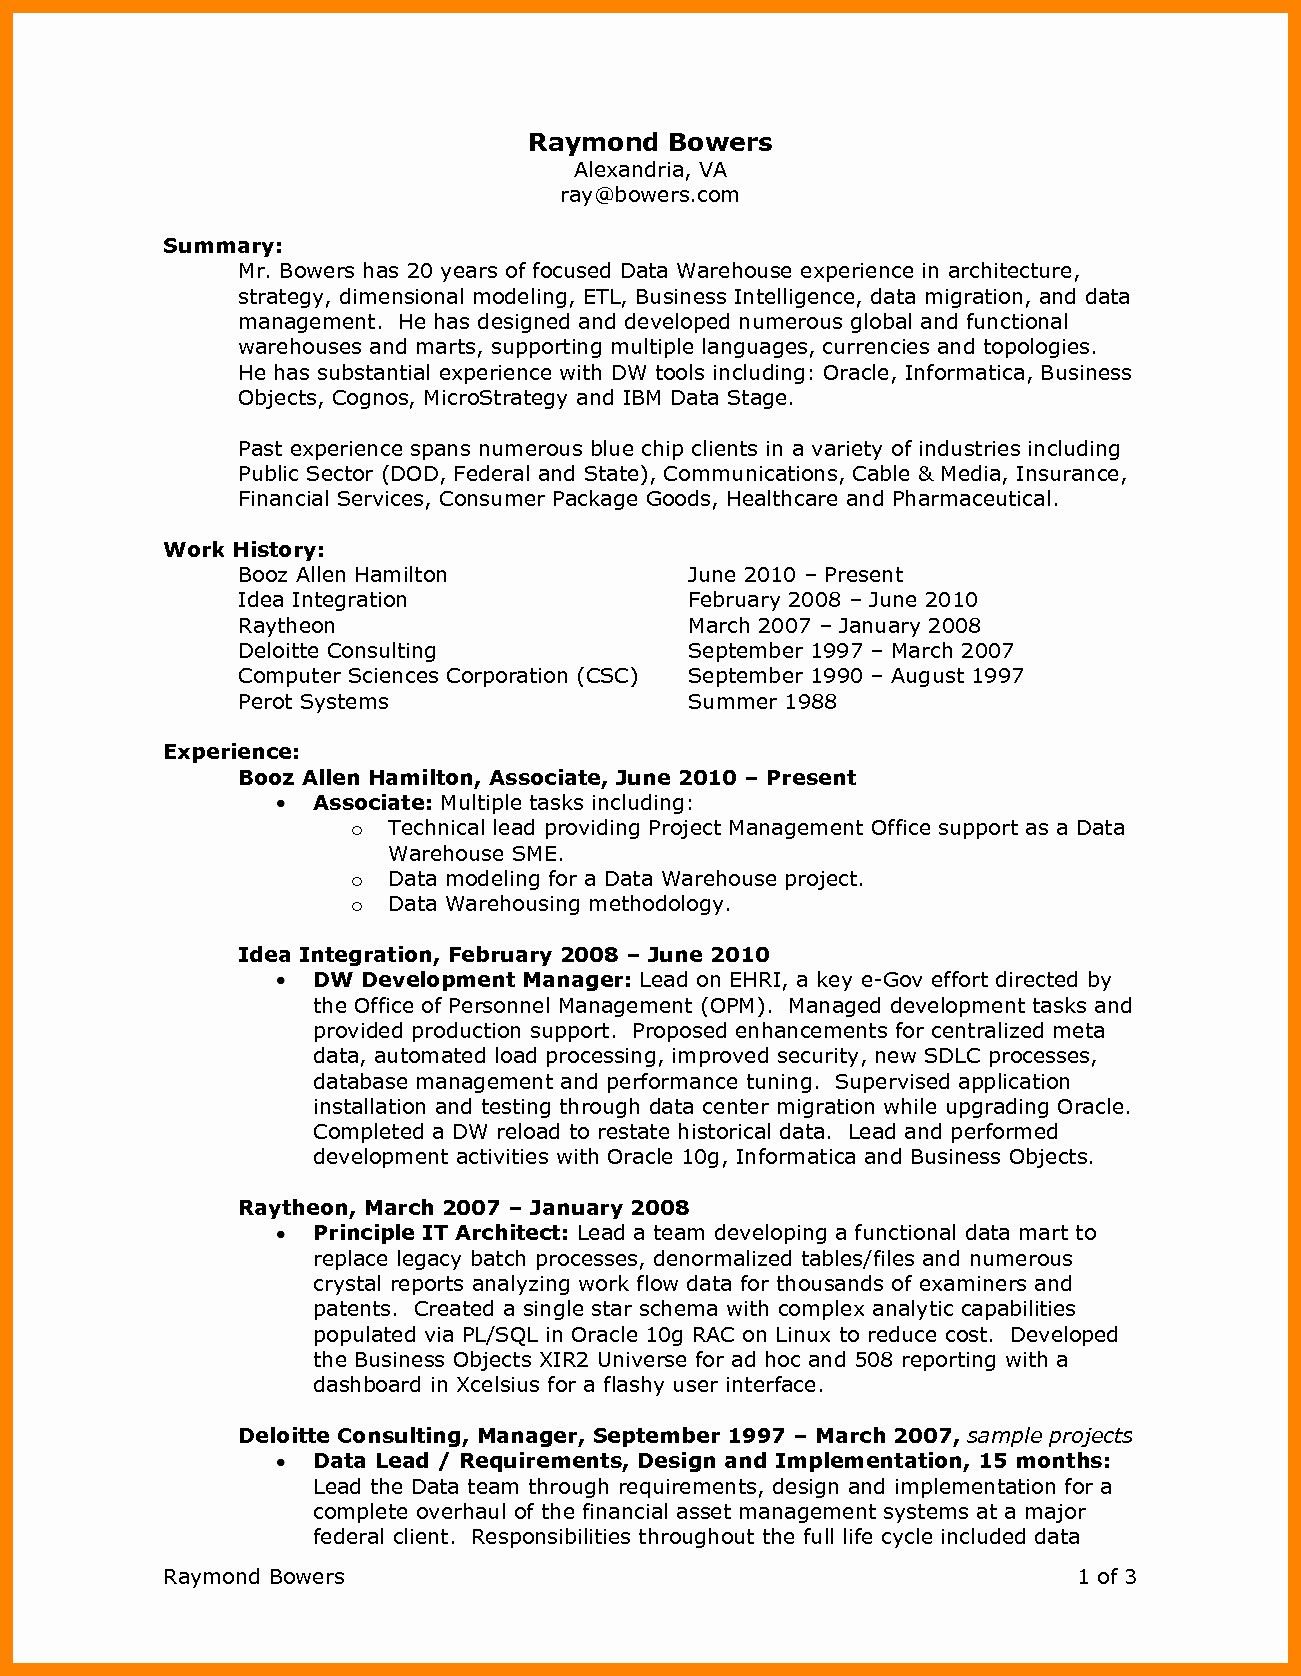 Architecture Student Resume - Resume for Internal Promotion Template Free Downloads Beautiful